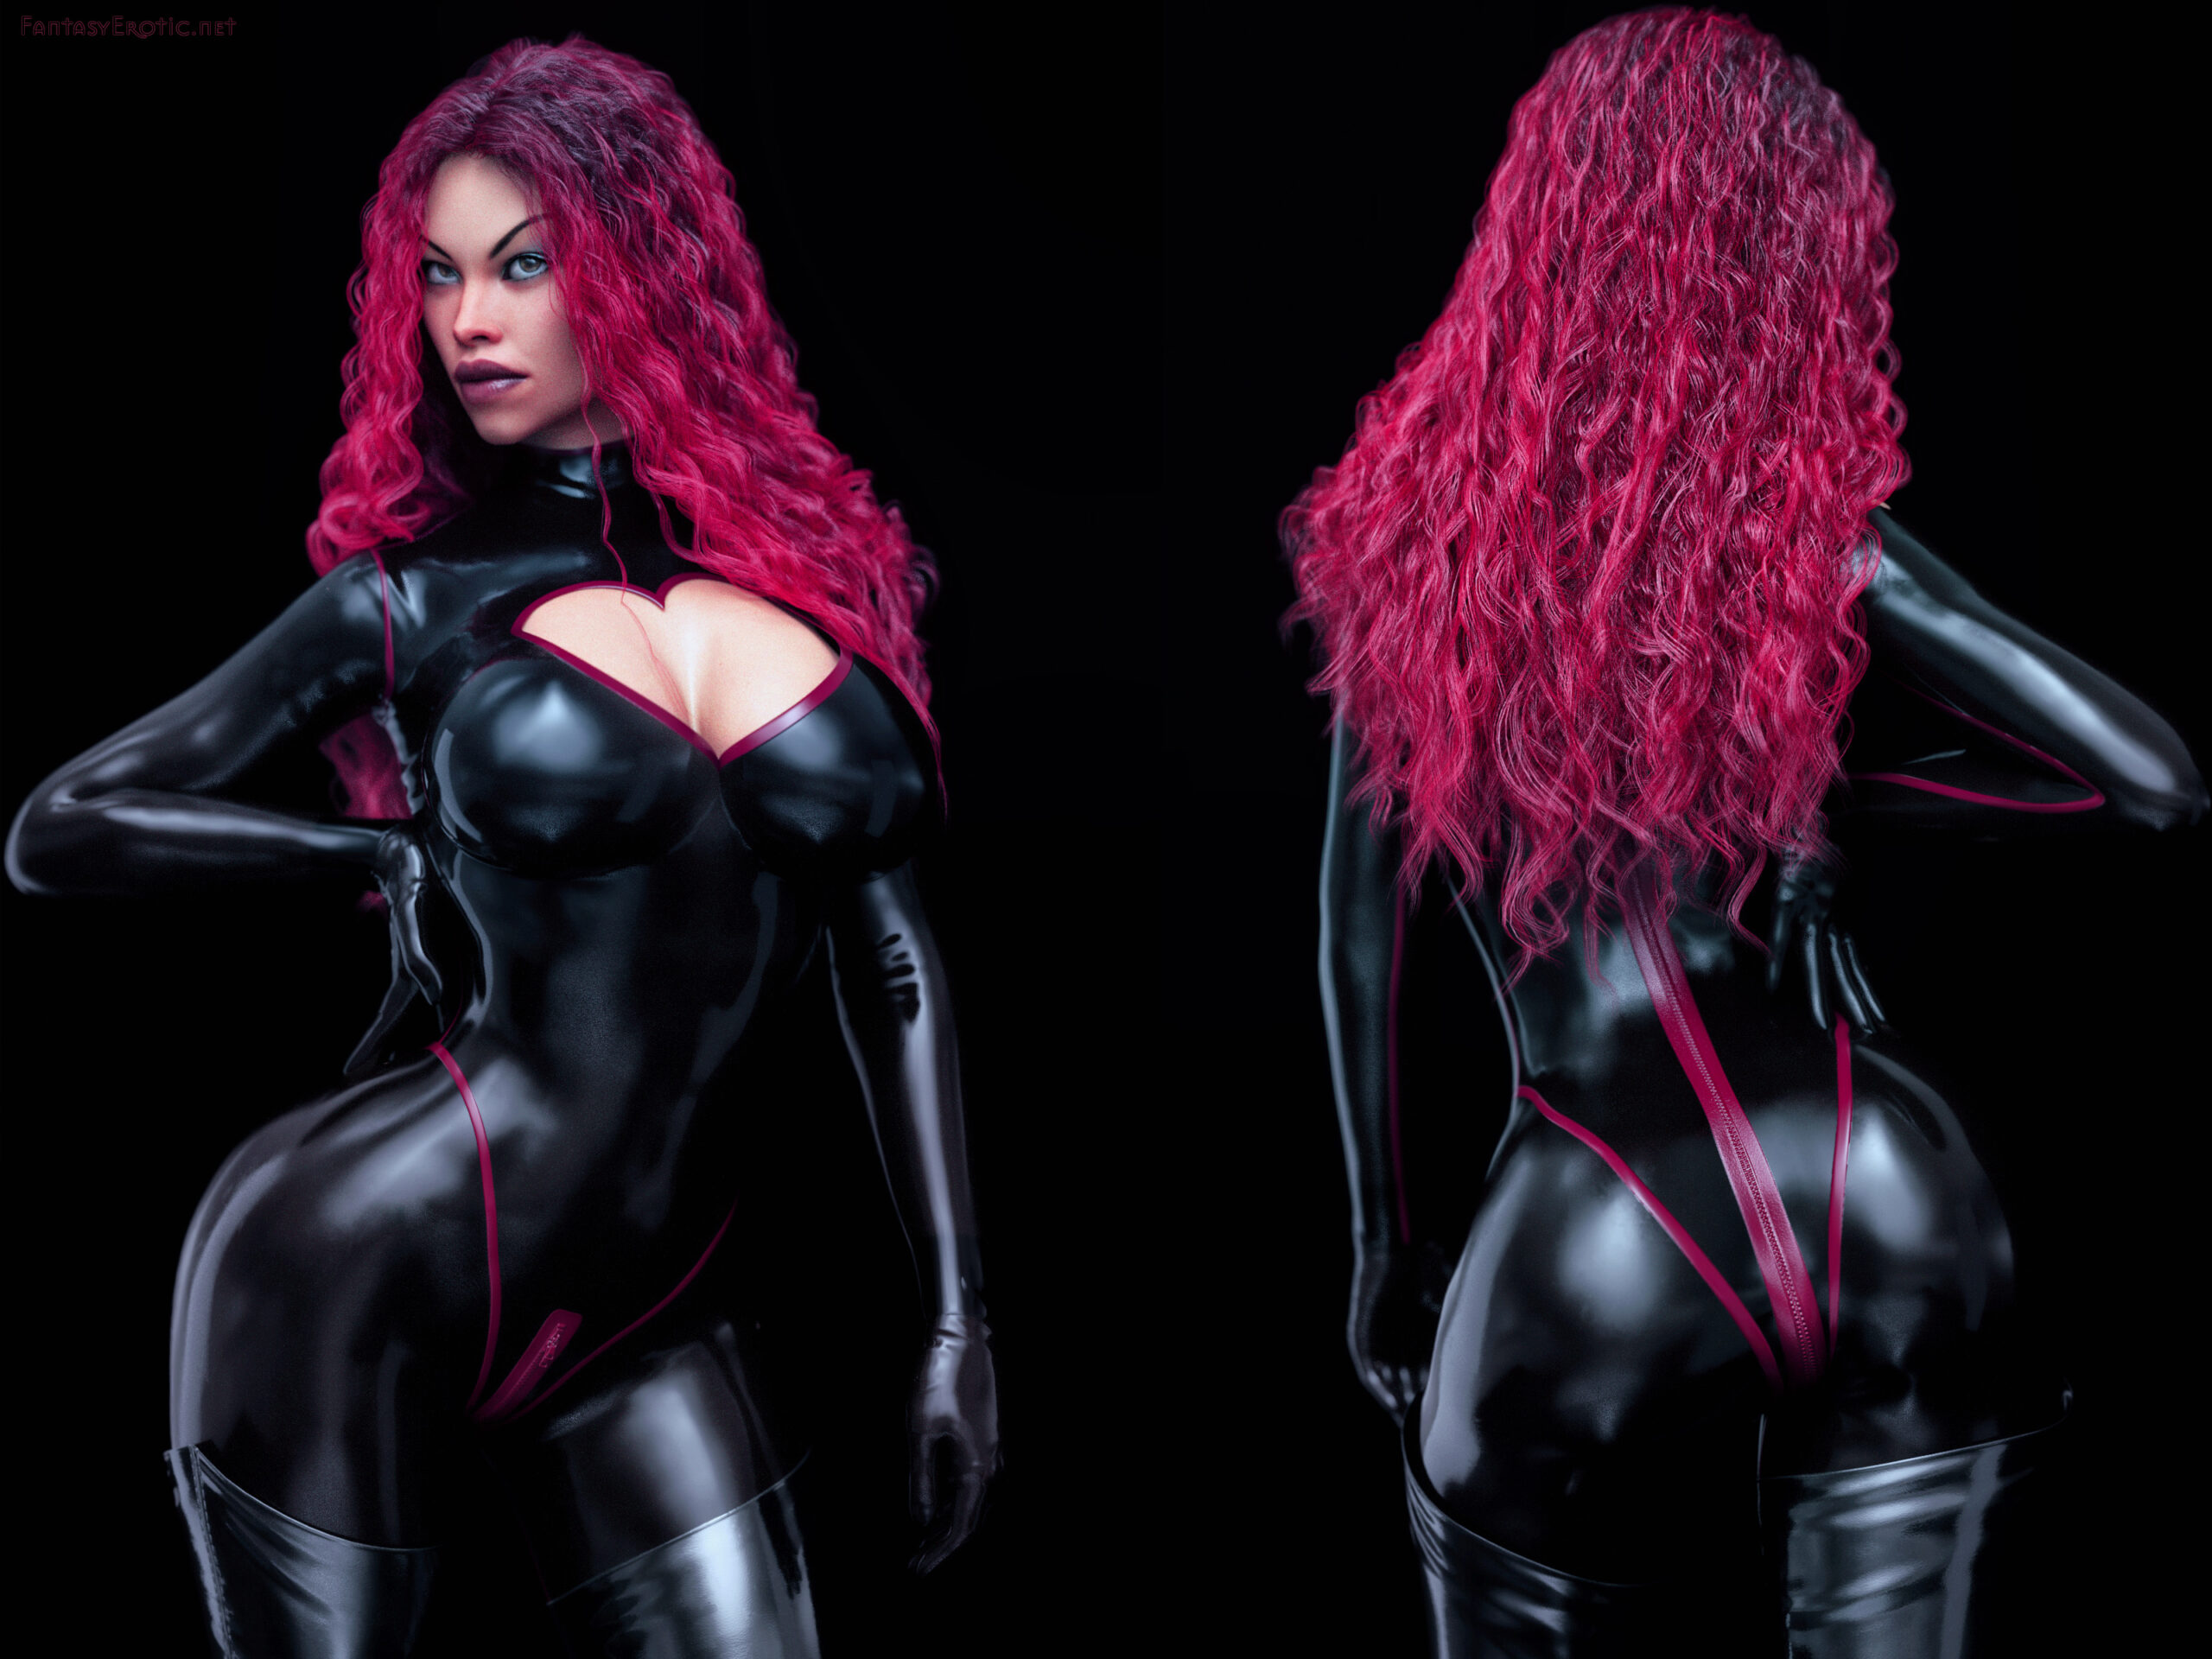 Latex Catsuit Fetish Wallpaper 4x3